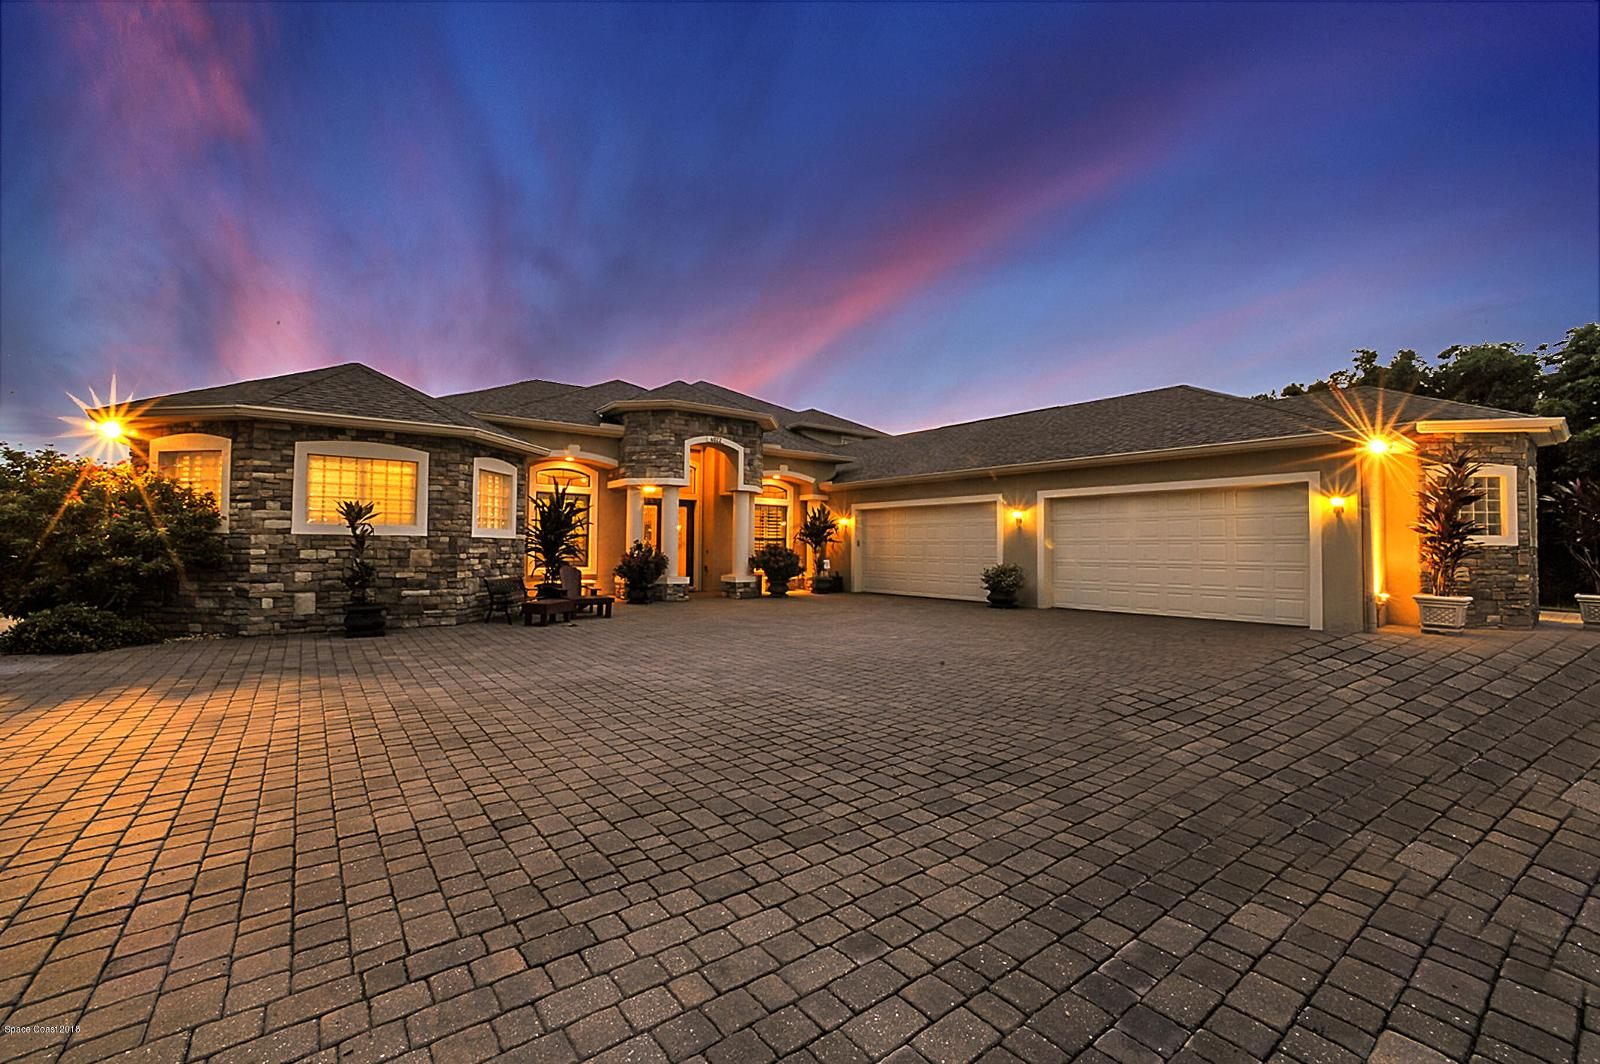 Local Real Estate: Homes for Sale — Sunset Lakes, FL — Coldwell Banker